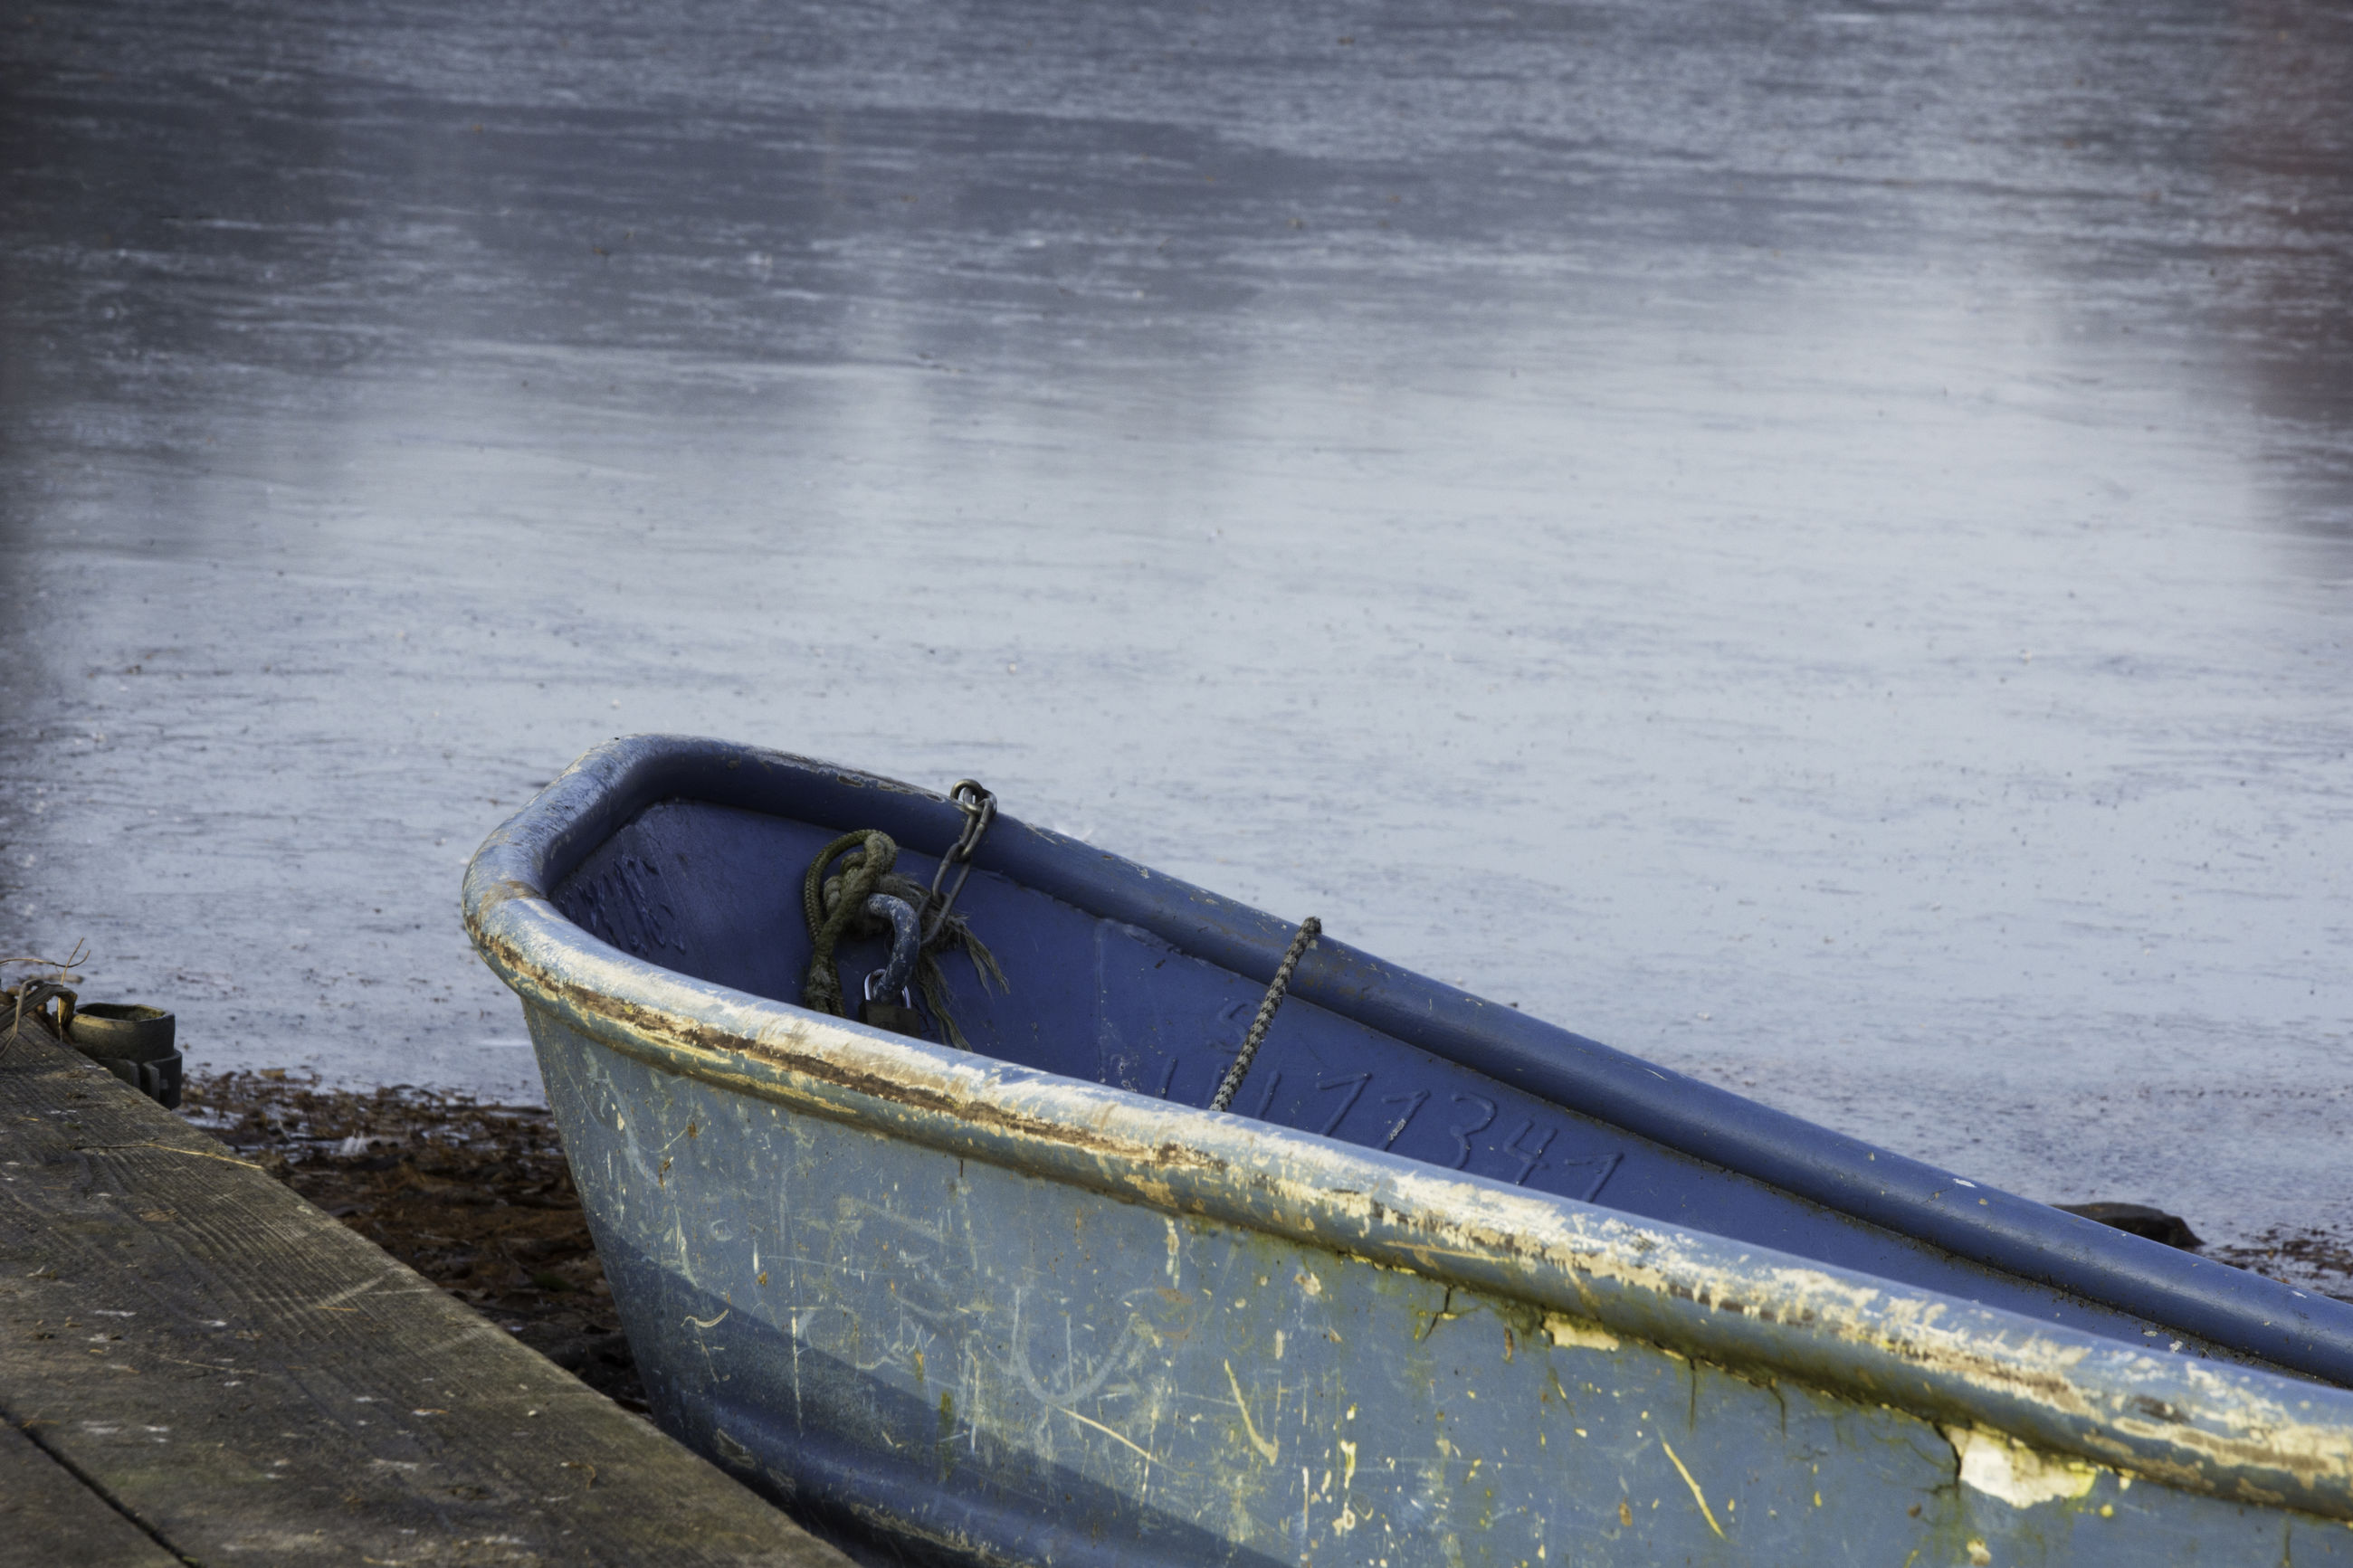 water, nautical vessel, day, outdoors, no people, nature